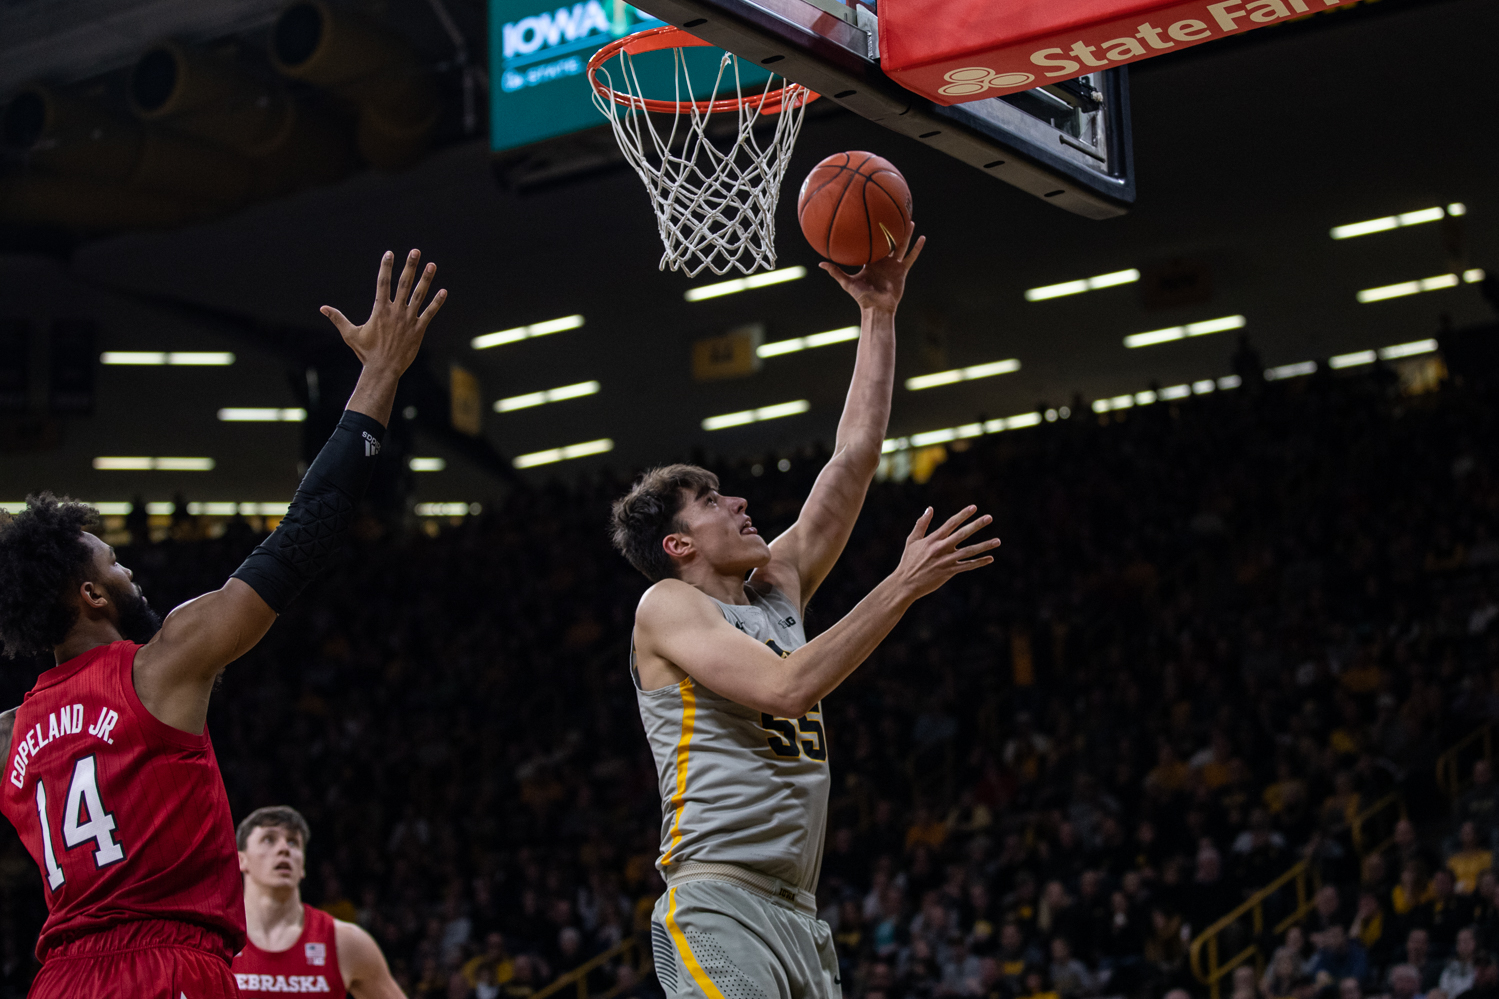 Iowa forward Luka Garza lays the ball up during Iowa's game against Nebraska at Carver-Hawkeye Arena on Sunday, January 6, 2019. The Hawkeyes defeated the Cornhuskers 93-84.